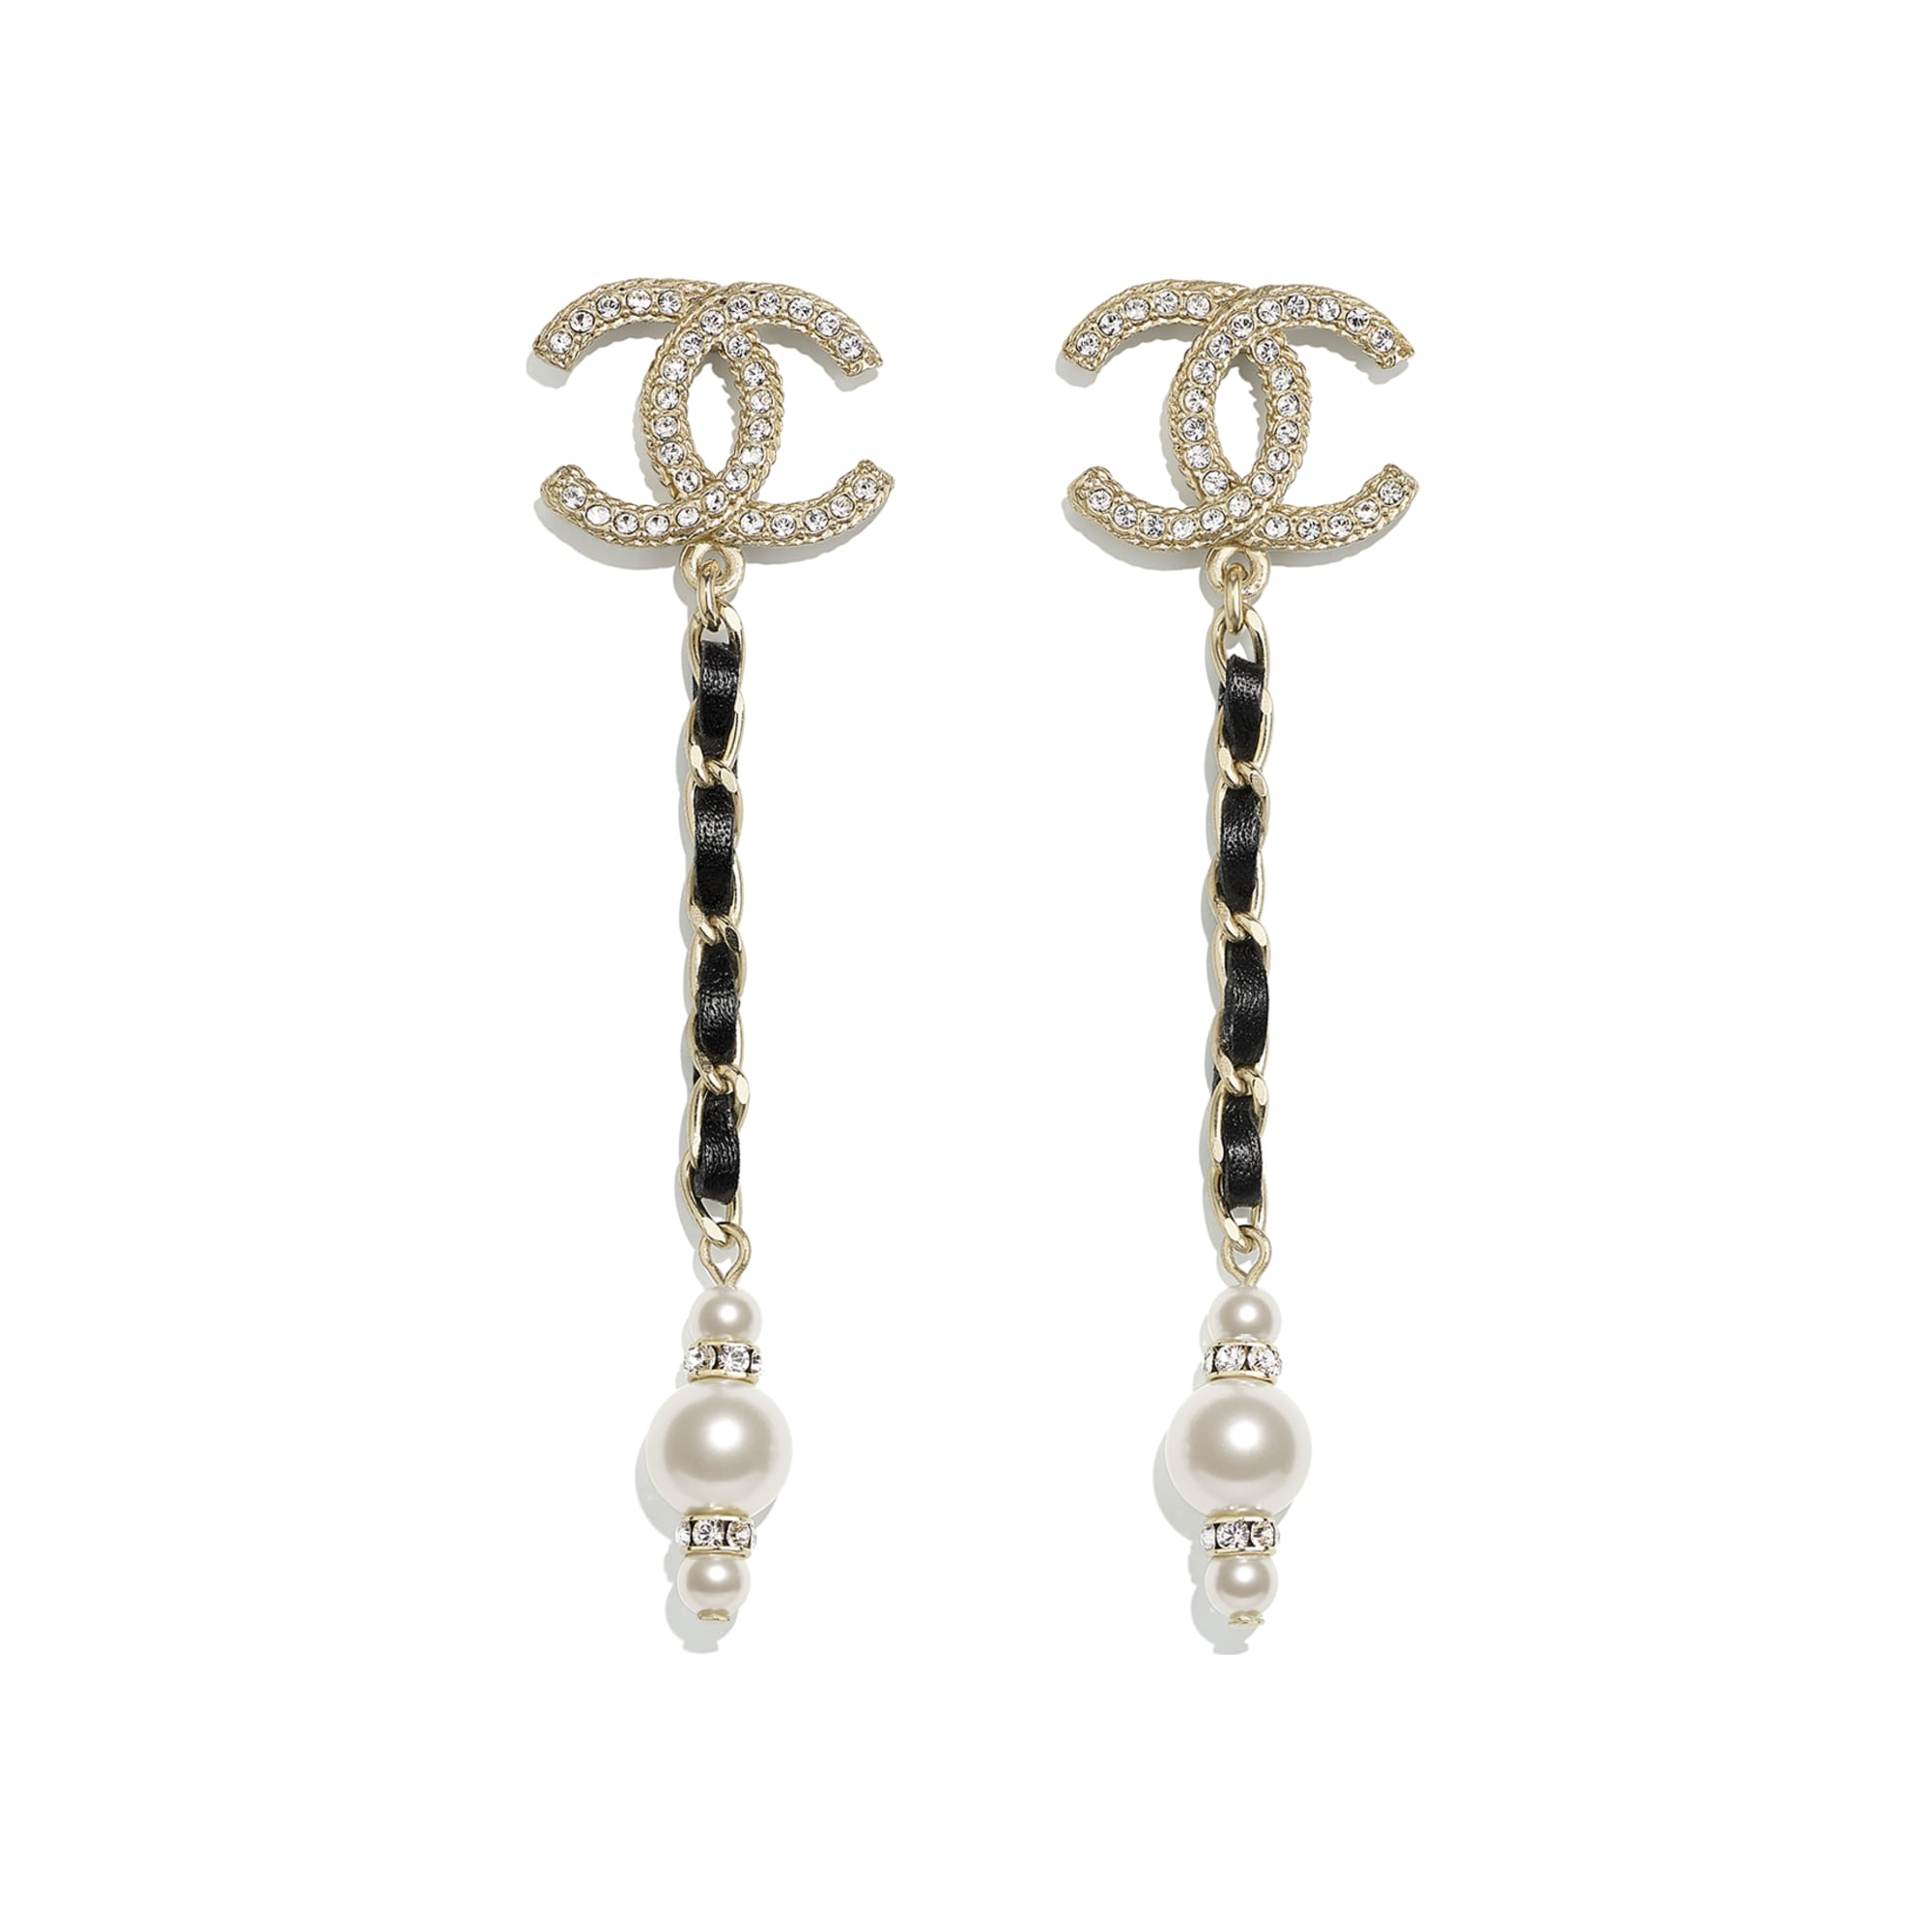 Earrings - Gold, Black, Pearly White & Crystal - Metal, Calfskin, Glass Pearls & Strass - CHANEL - Default view - see standard sized version